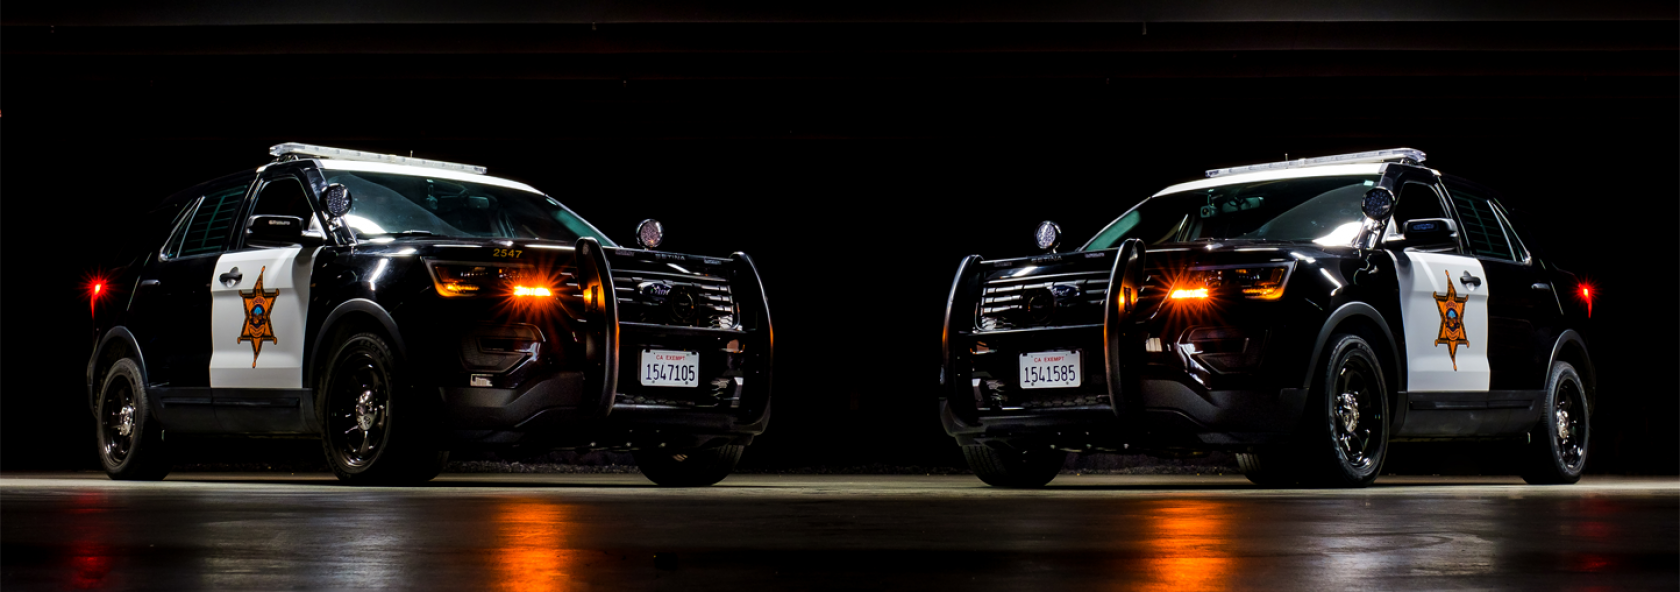 Two Sheriff patrol SUV's on black background